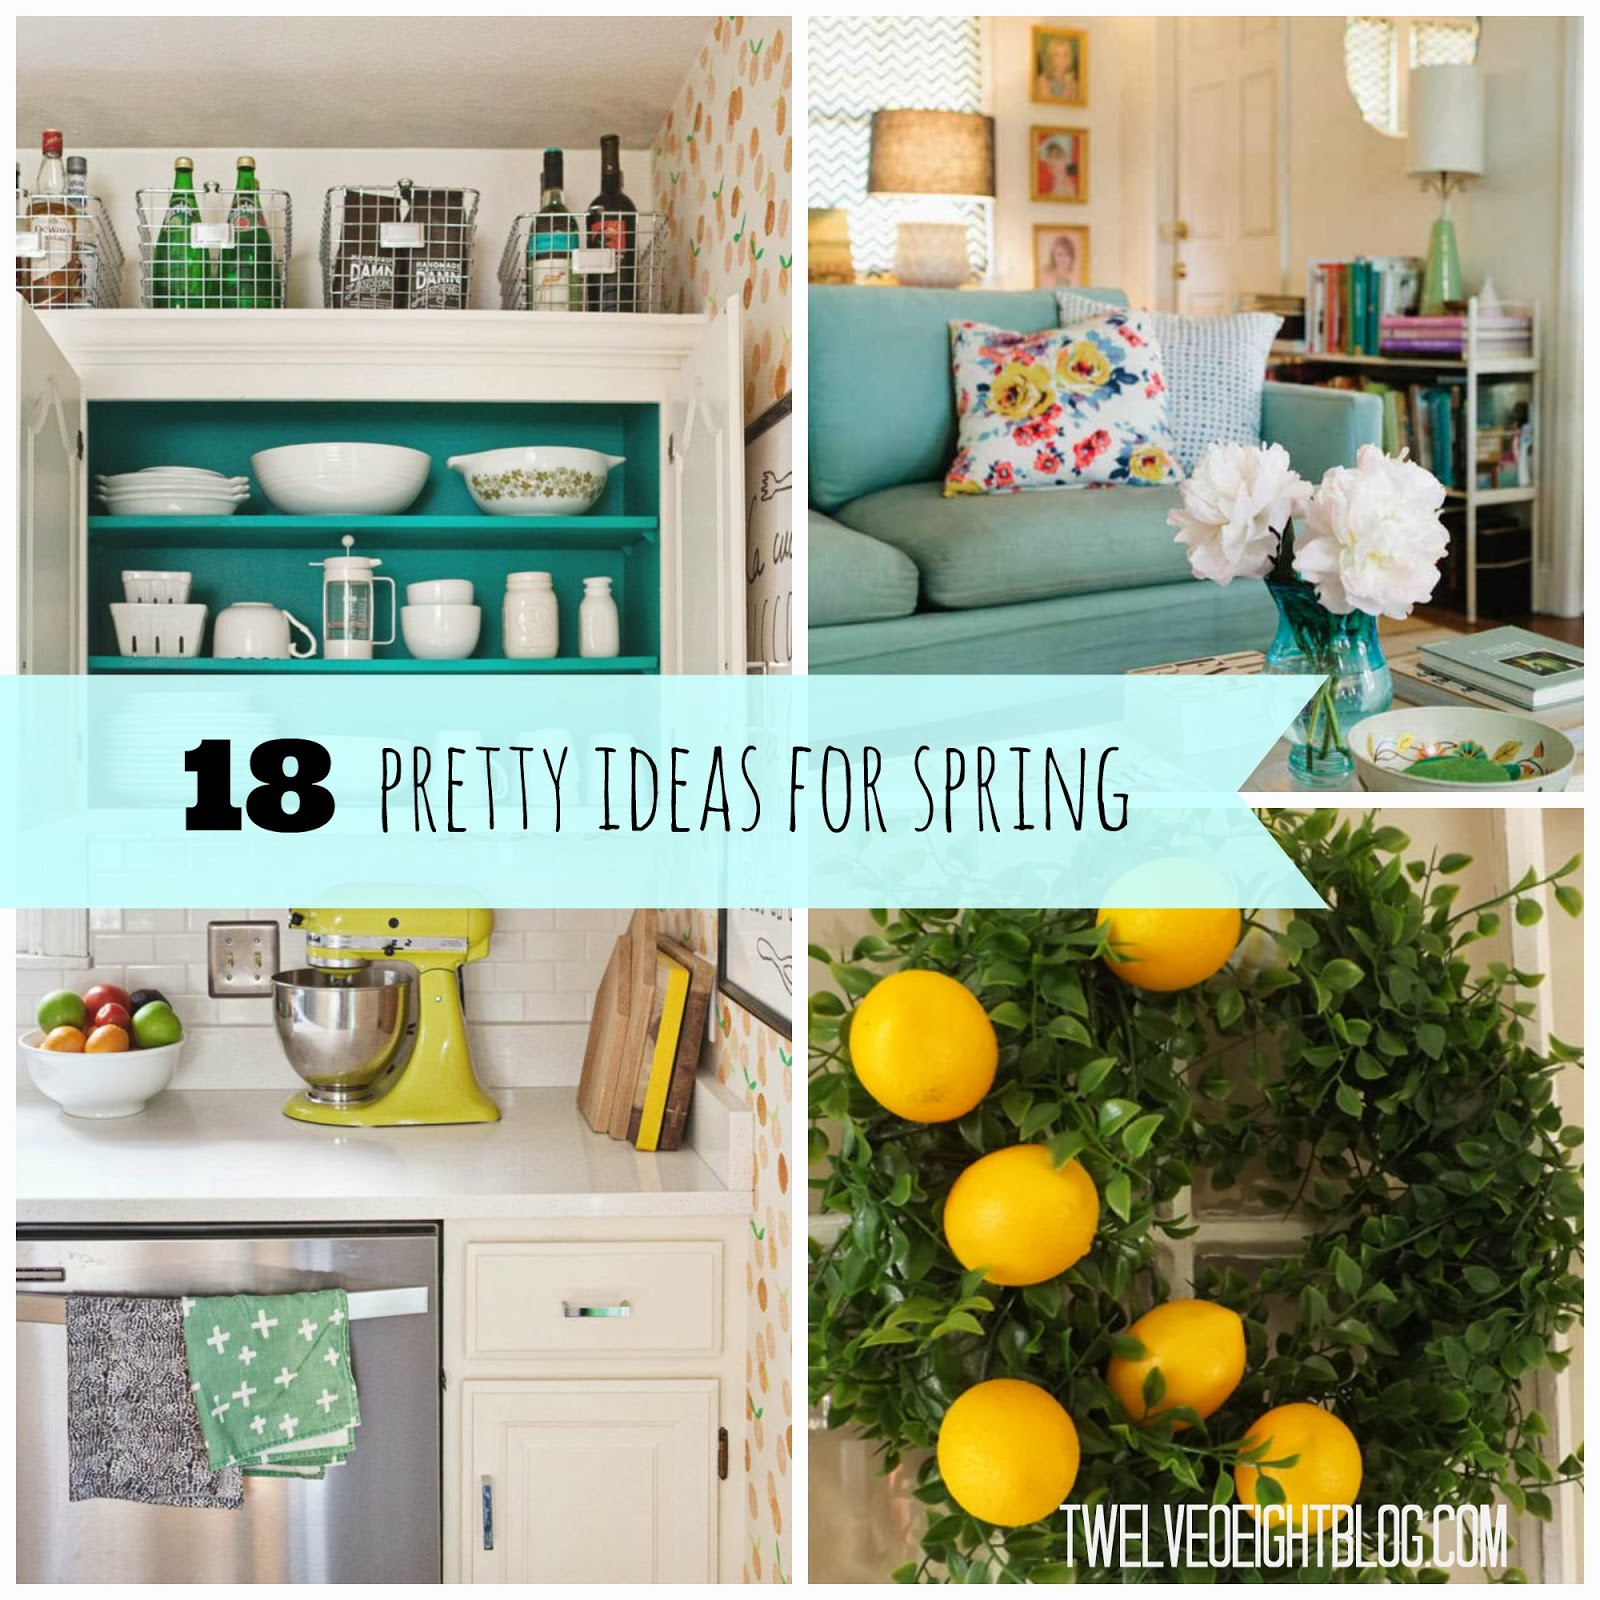 Spring Design Ideas: 18 Pretty Spring Decorating Ideas